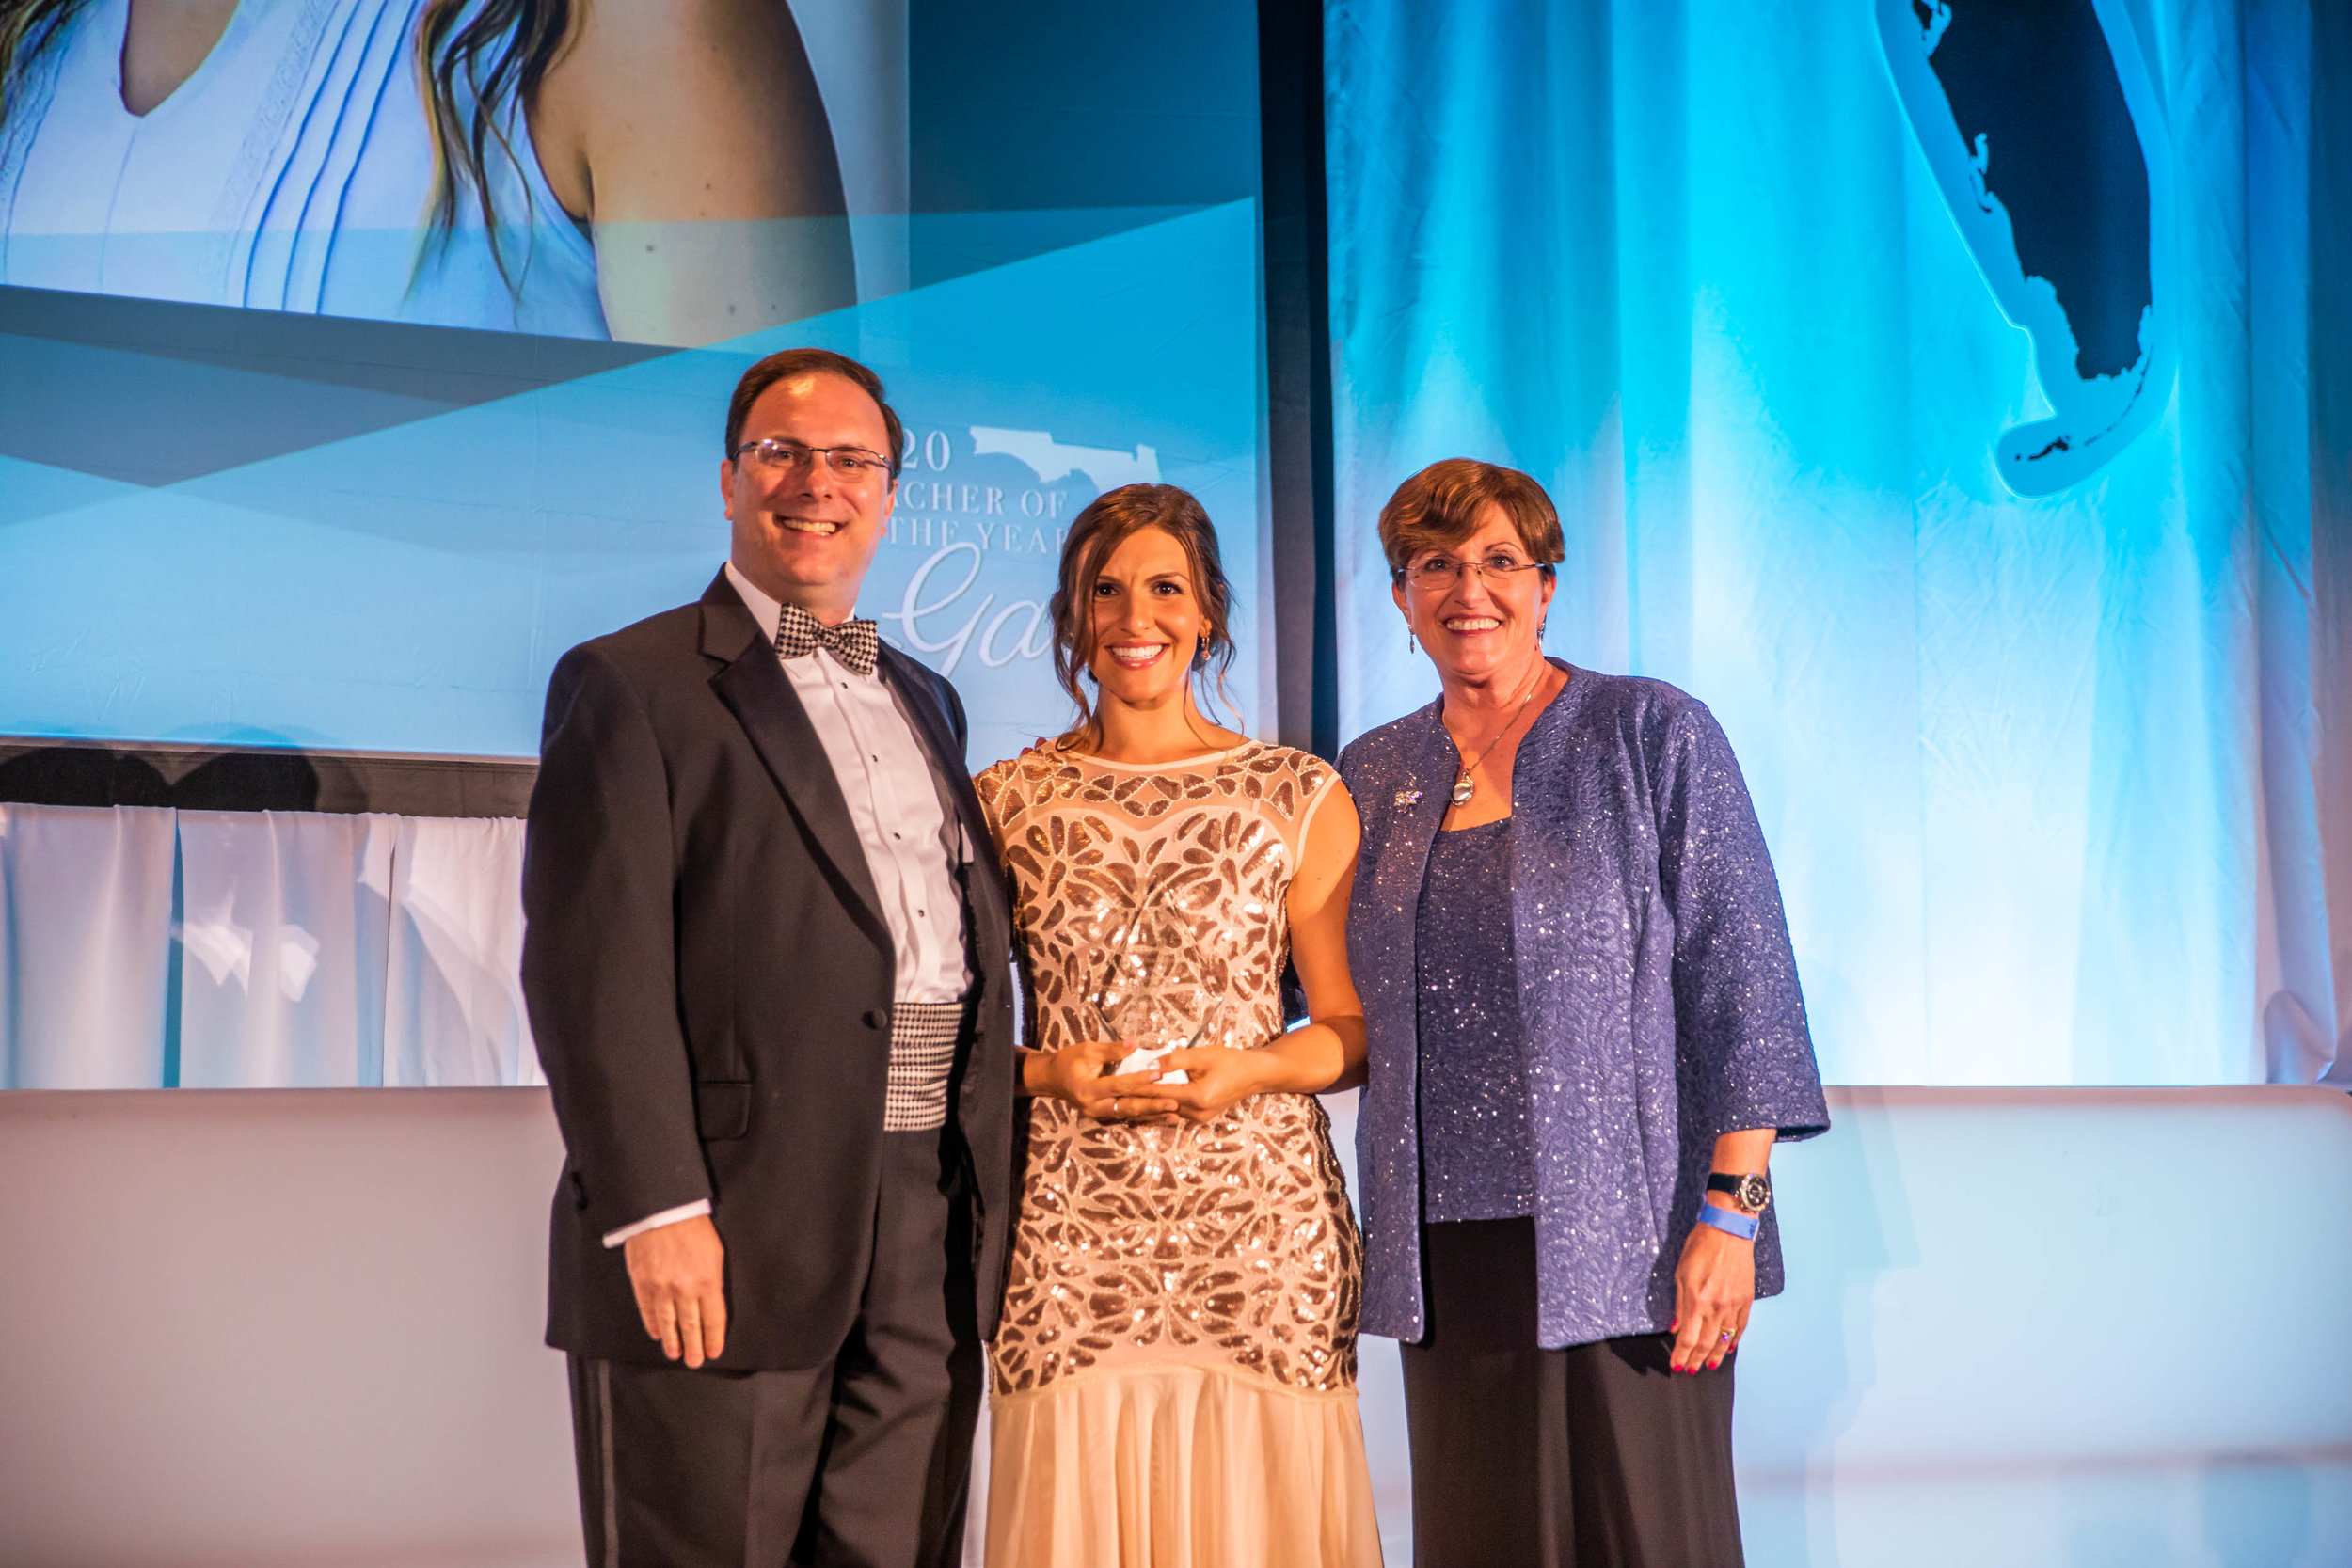 2019 MARY BROGAN EXCELLENCE IN EDUCATION AWARD - MELISSA PAPPAS, ORANGE COUNTYPresented by Charles Hokanson, Senior Vice President, Helios, and 2018 Recipient Bonnie Bresnyan, Hillsborough County